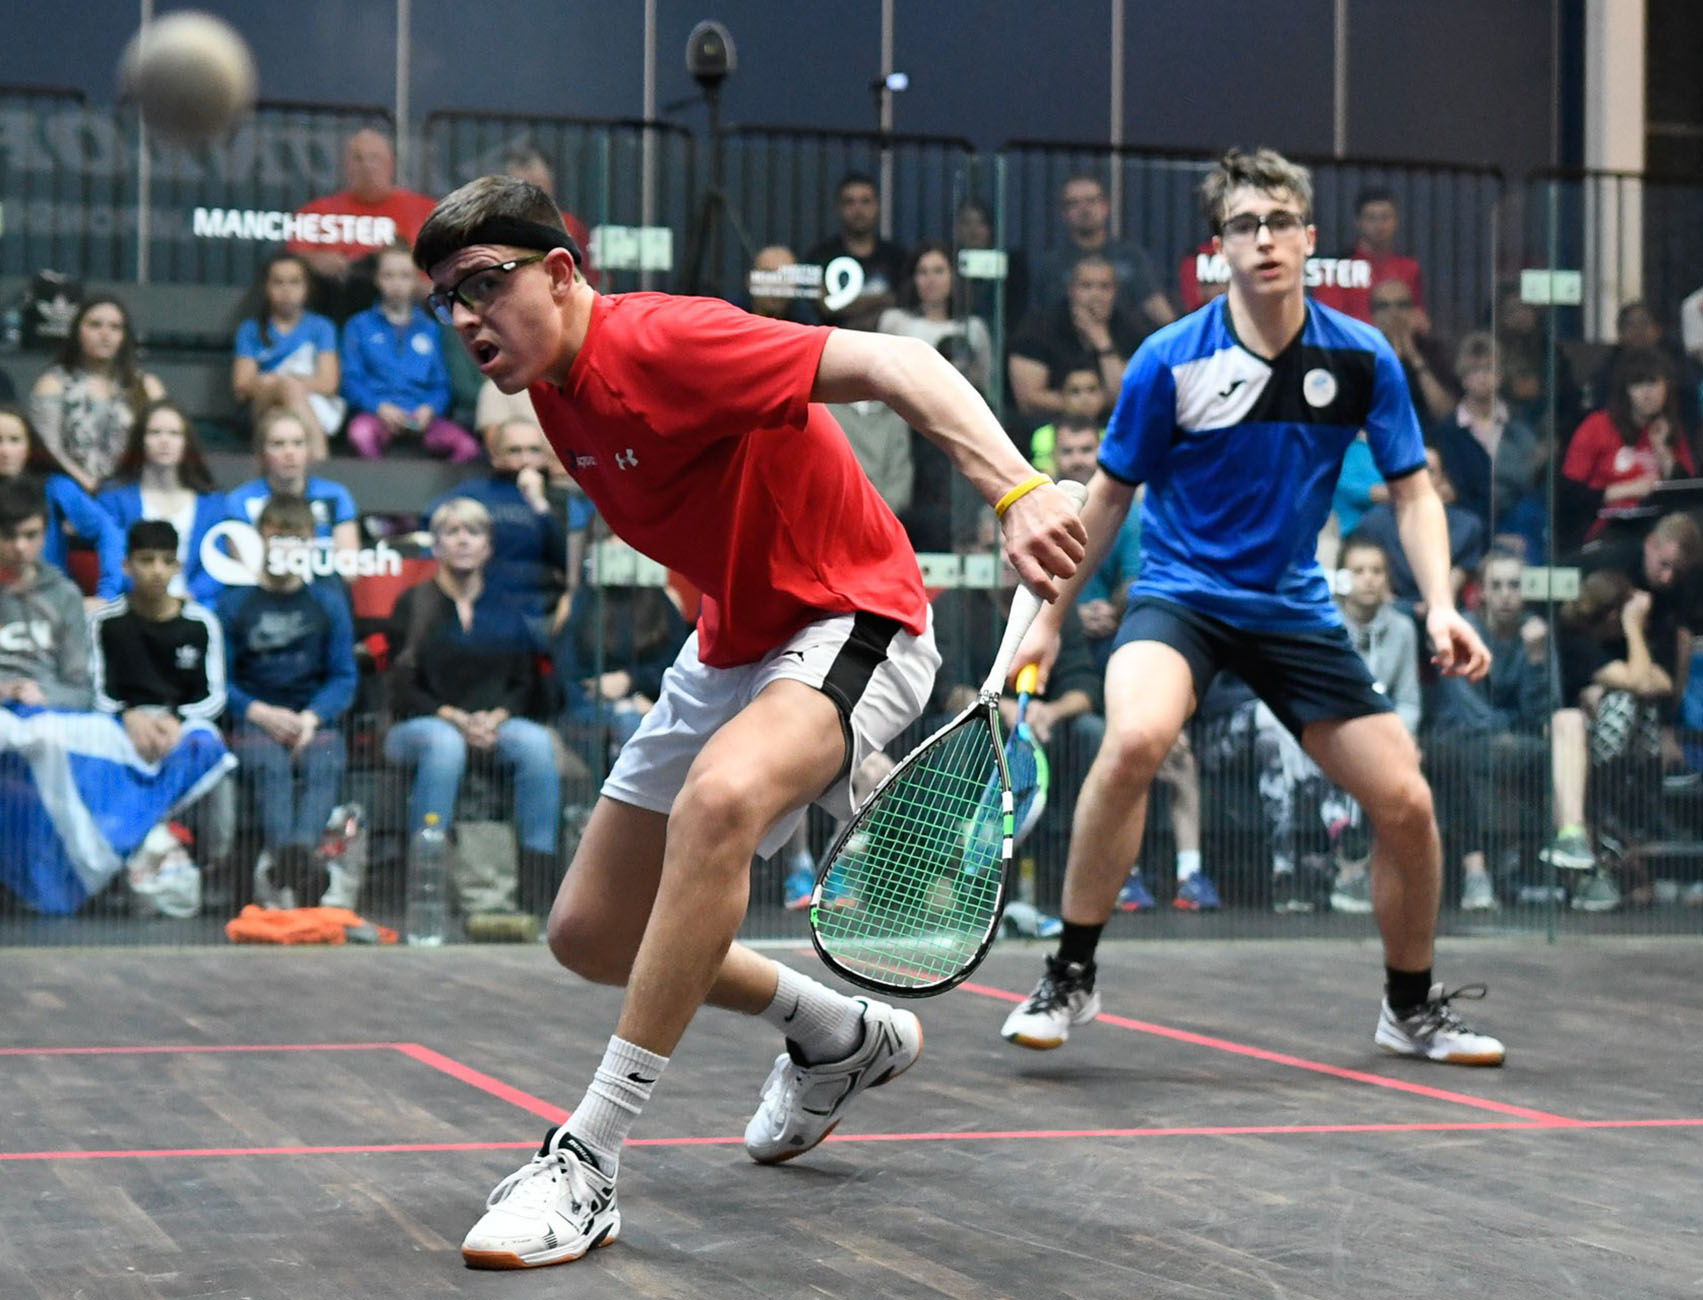 Solihull squash hopeful aims for glory at British Junior Open